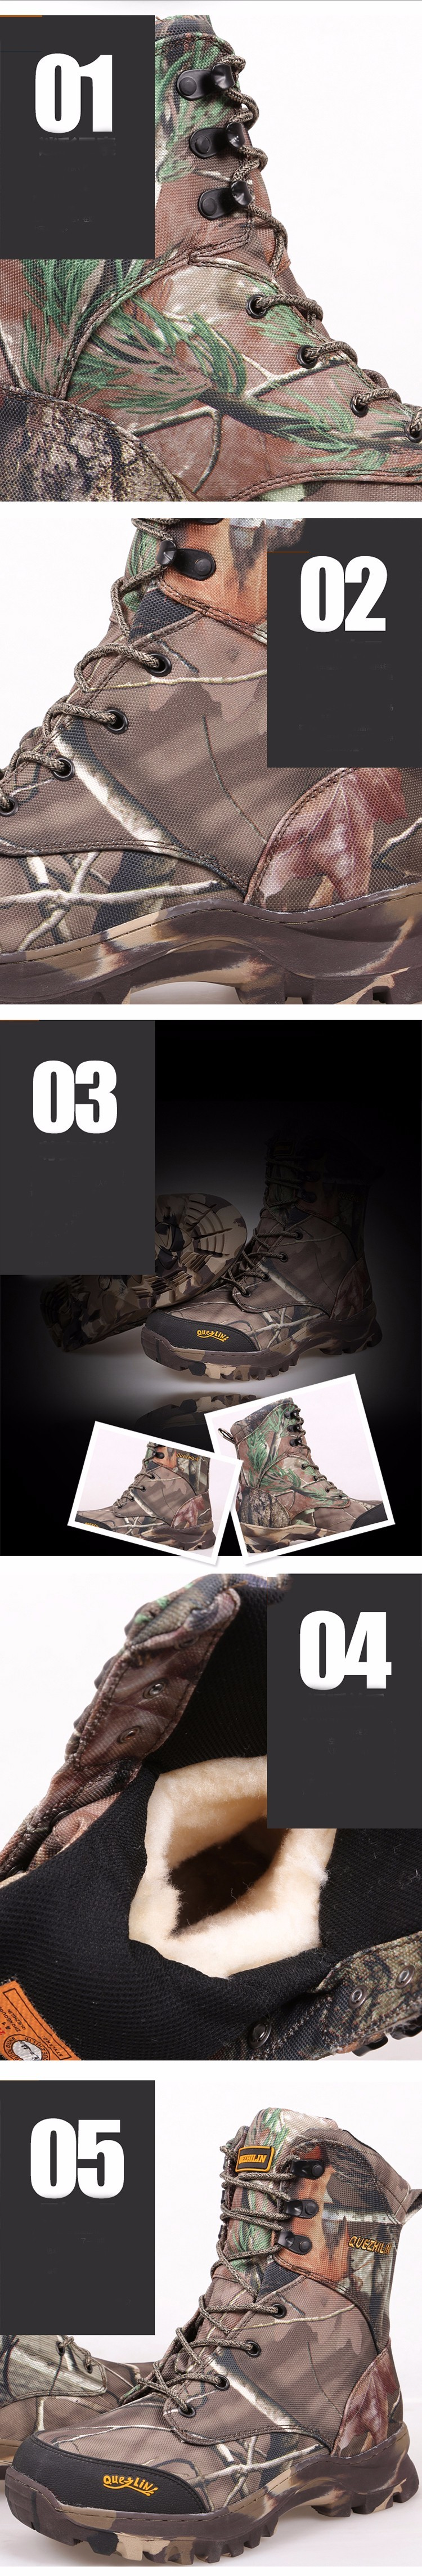 Male Winter Hunting Outfit Desert Boots Camouflage